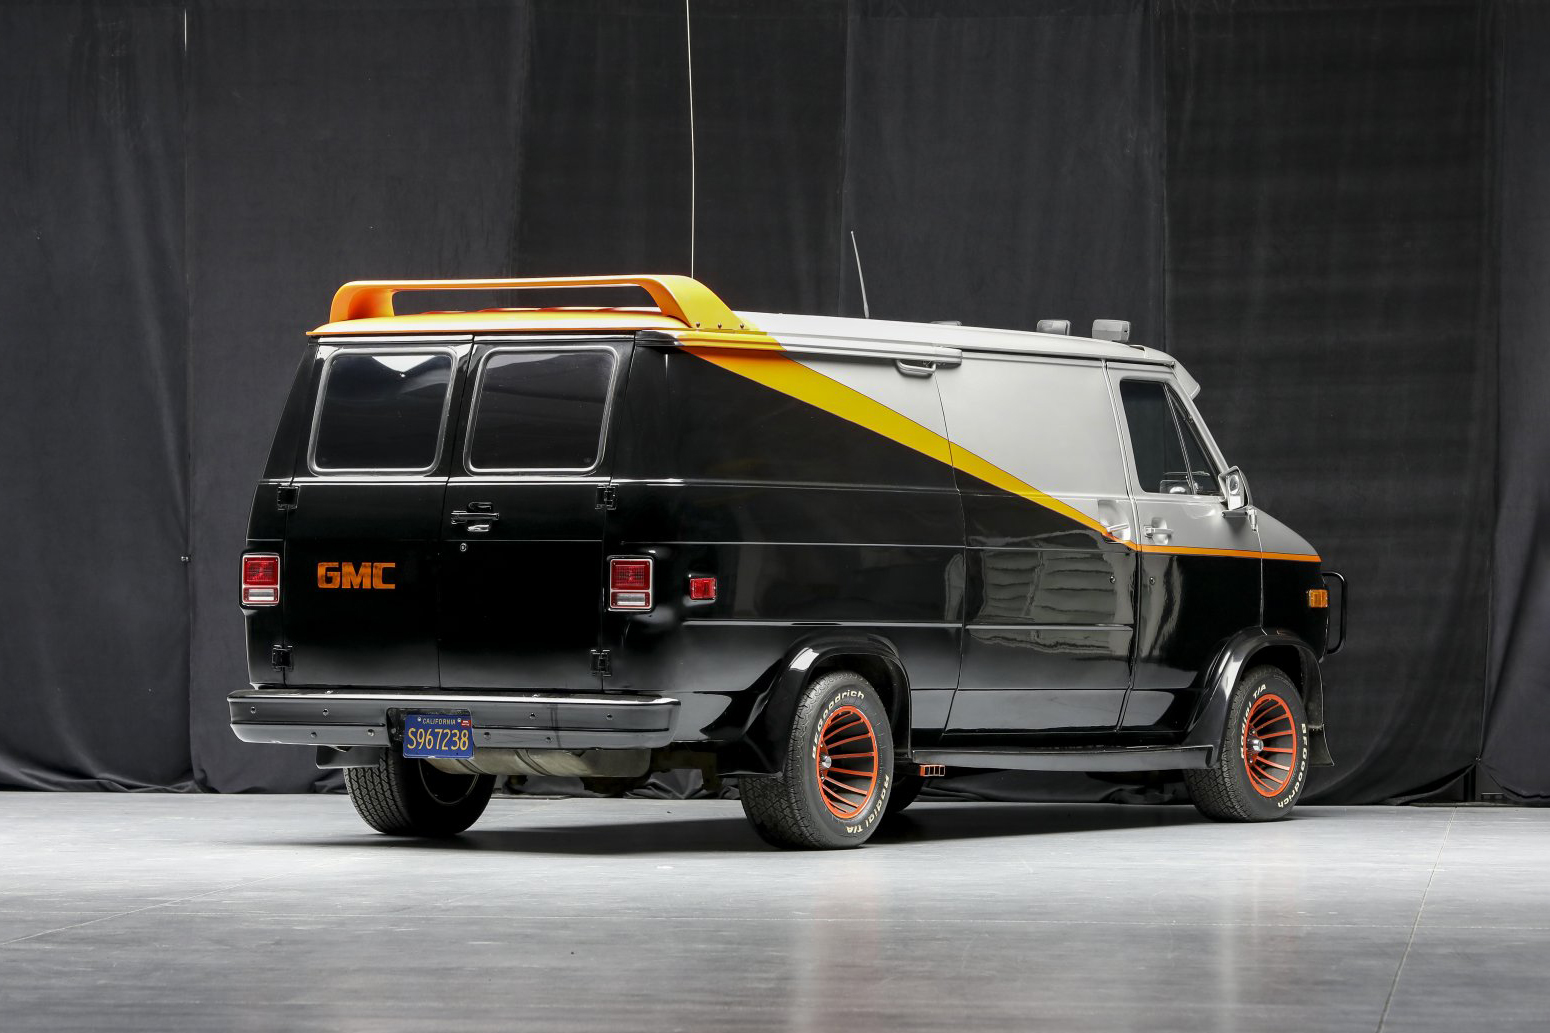 A-Team Van auction